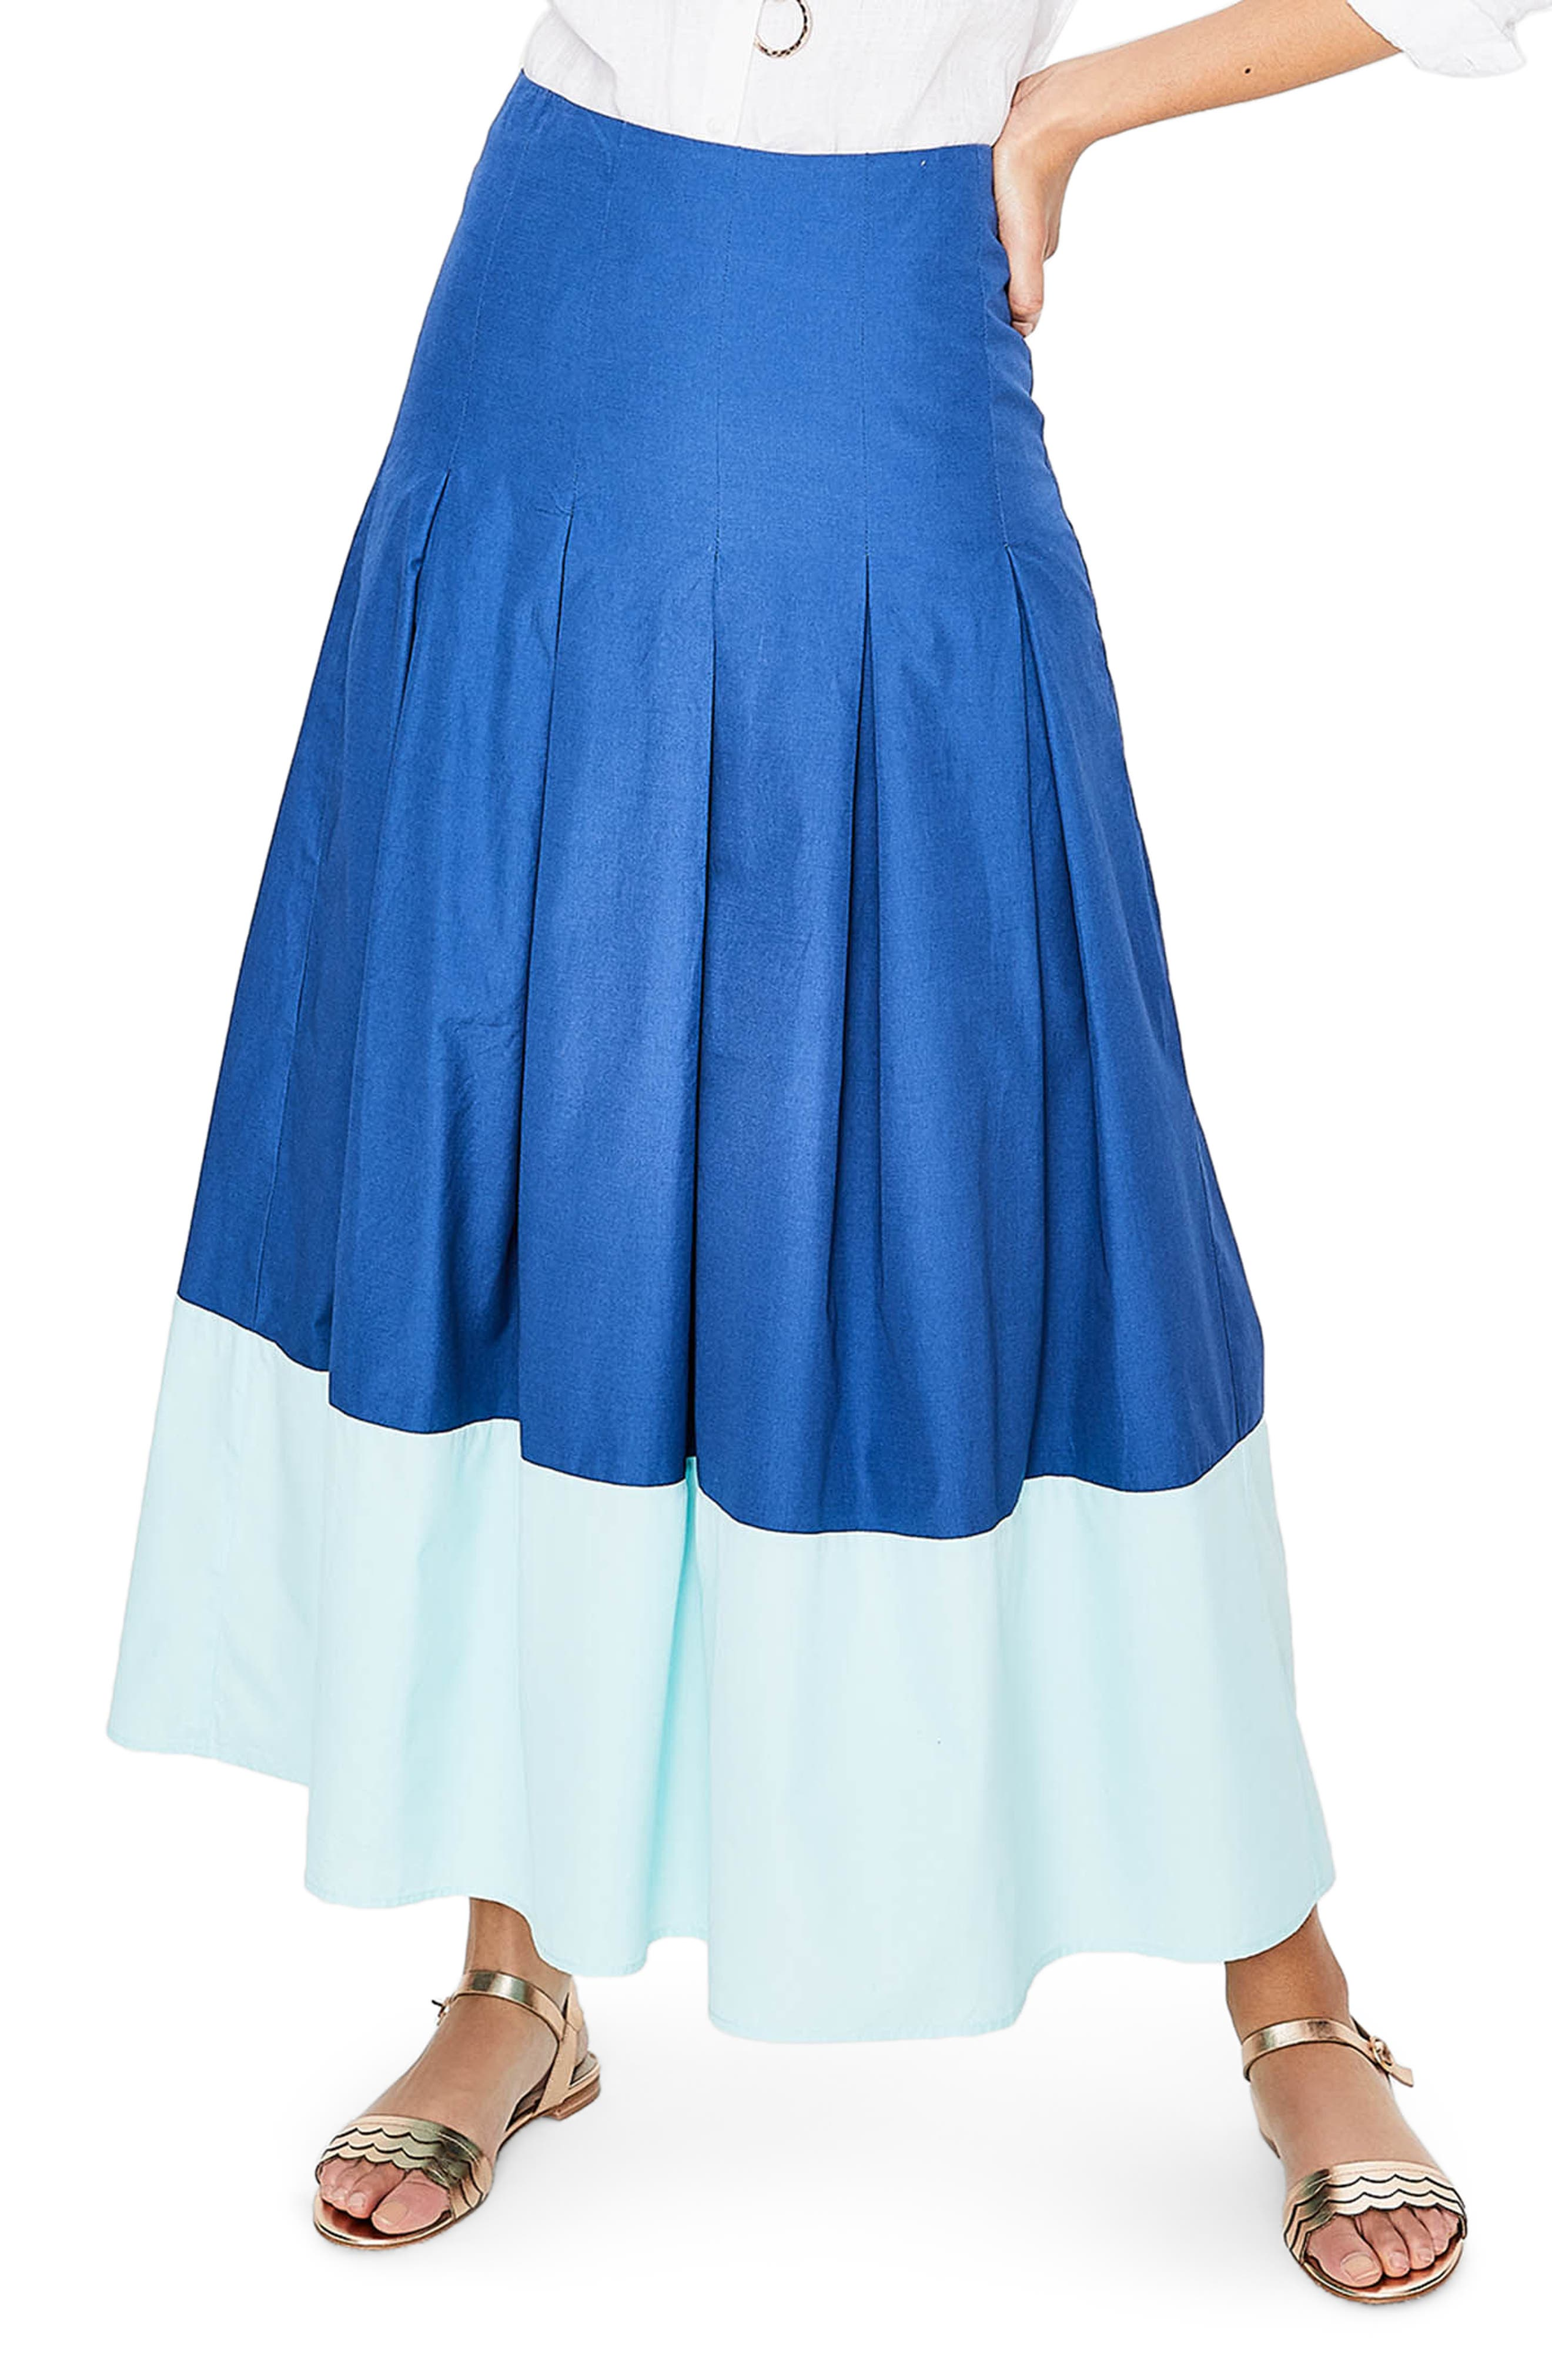 Beatrice Flare Midi Skirt,                         Main,                         color,